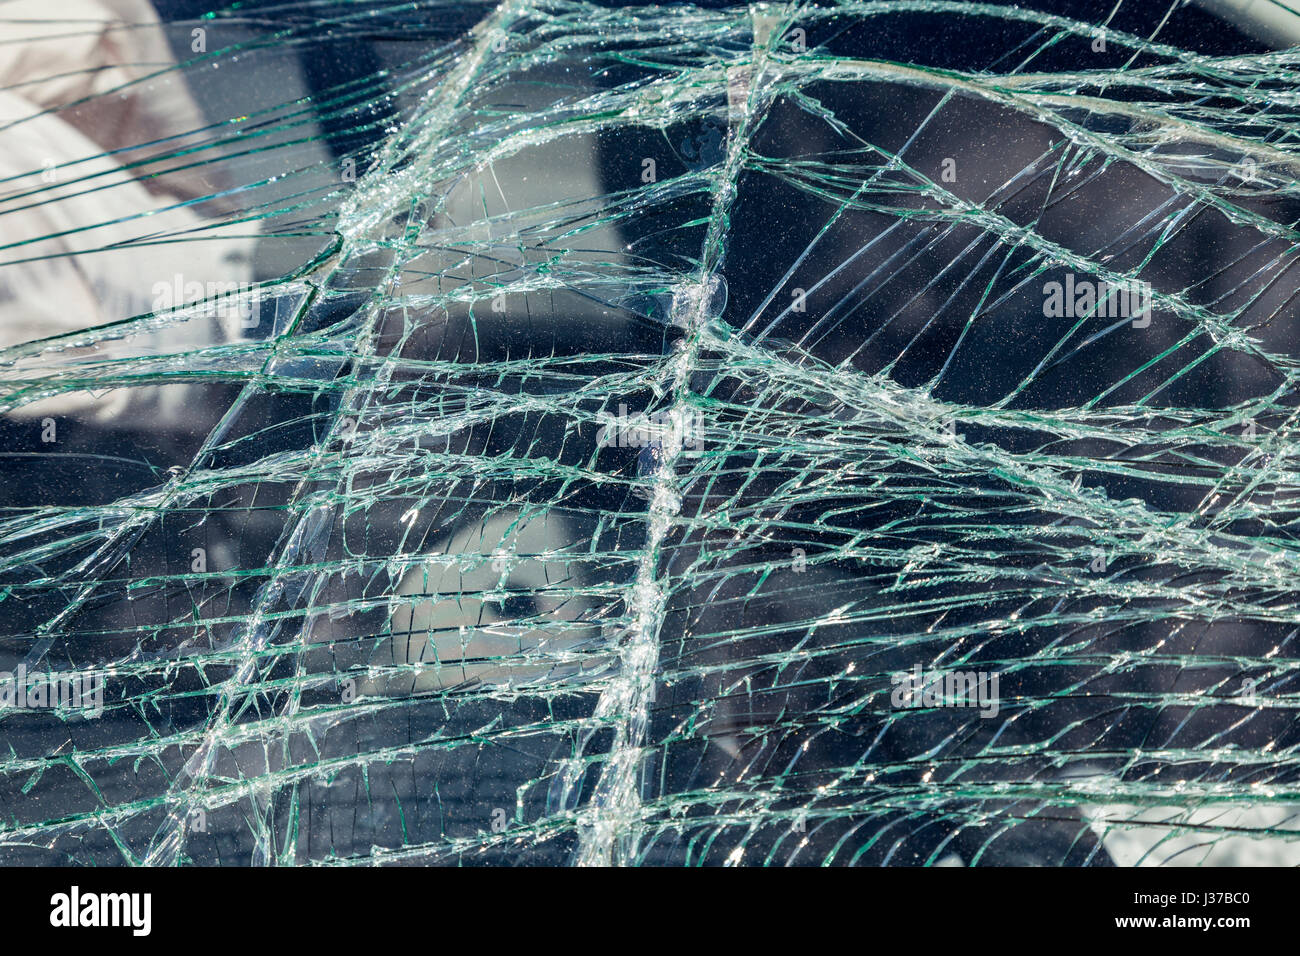 Crashed windshield of a car after accident - Stock Image